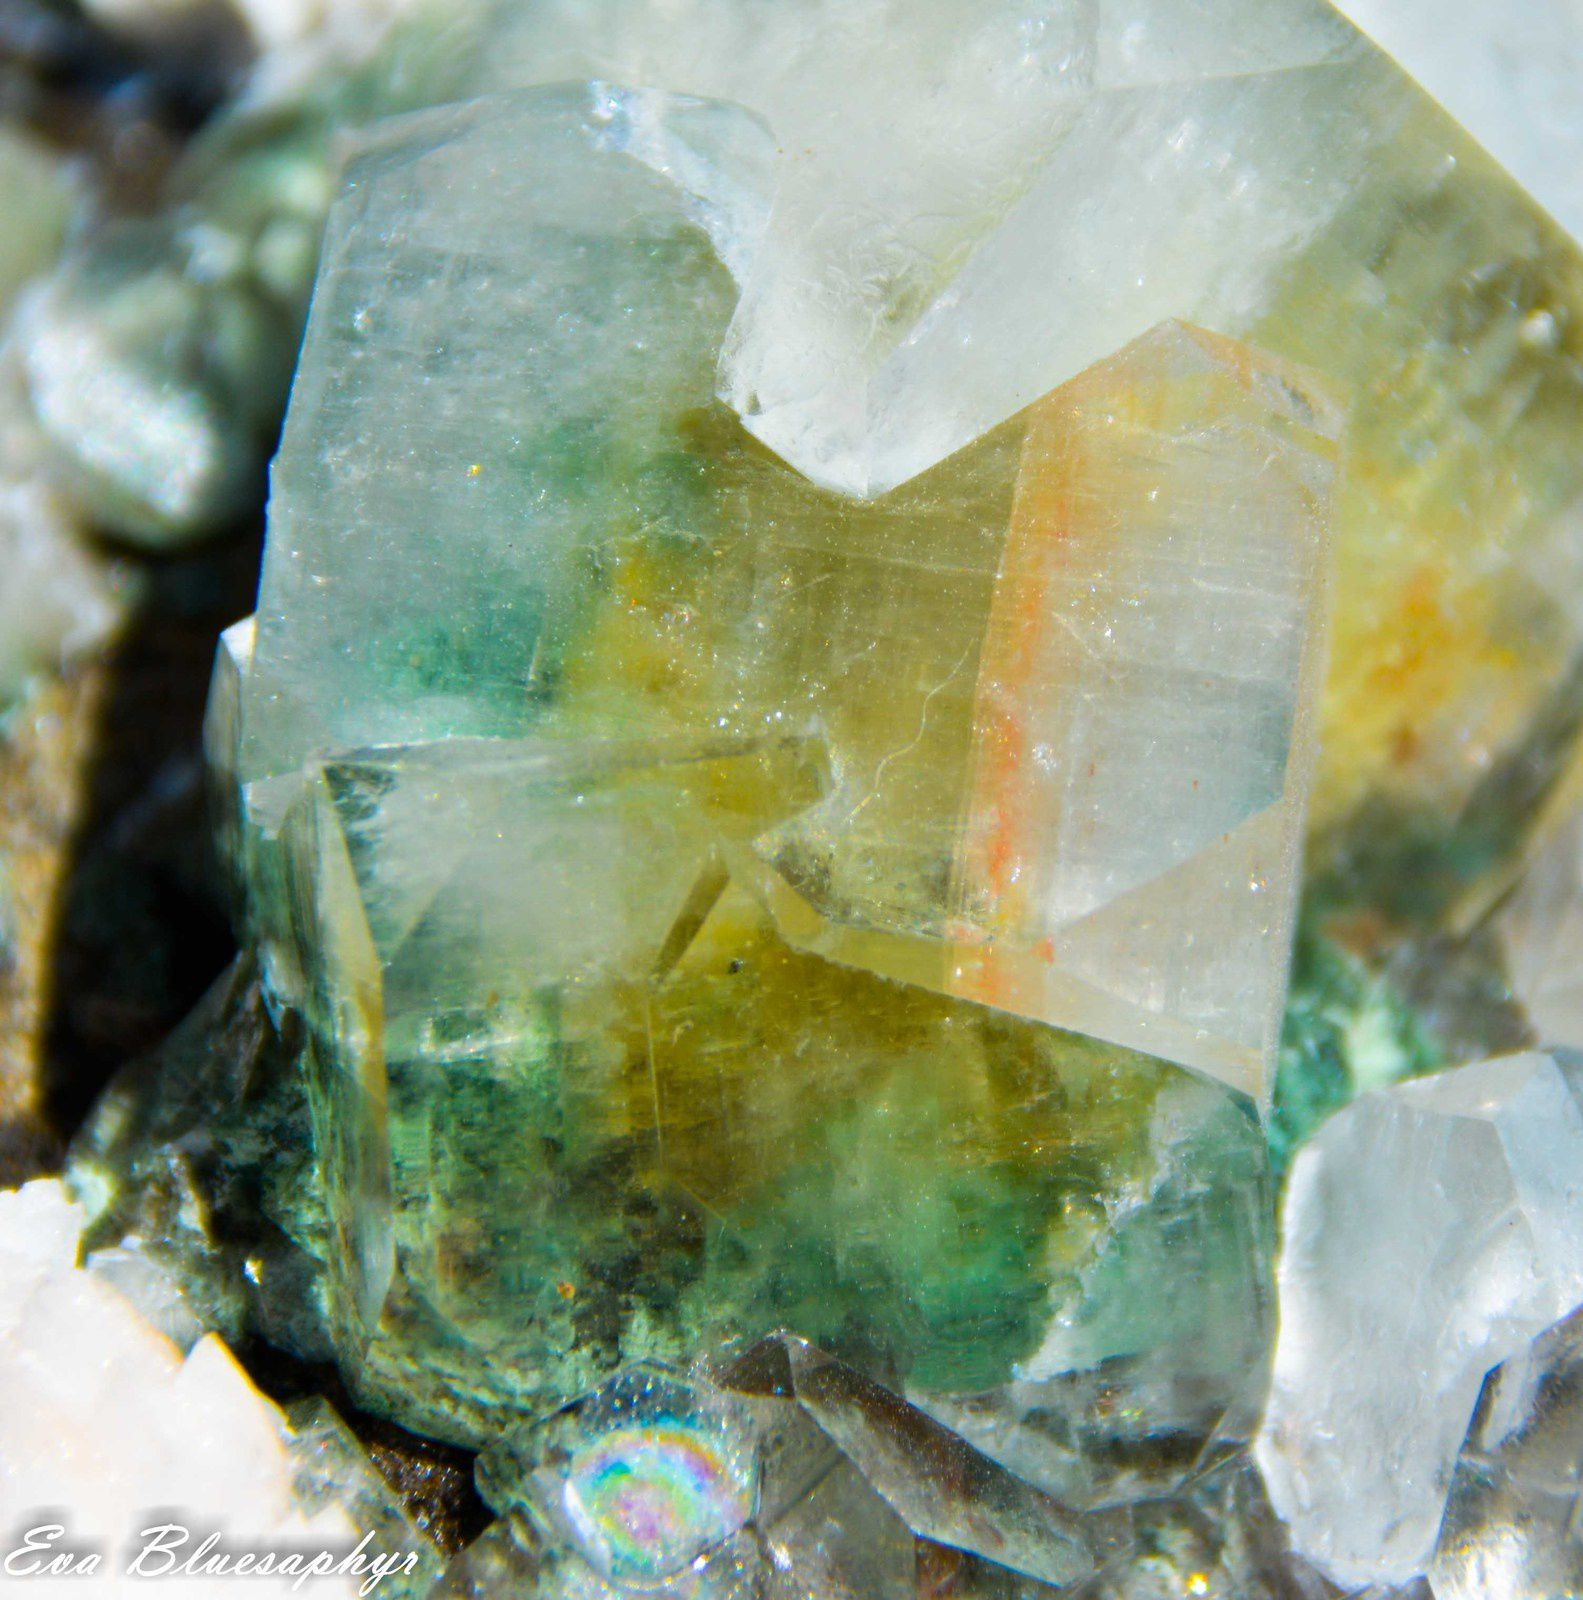 Green Apophyllite with Chlorite inclusions and Leumonite from Wadgaon Mine, Poonah, Maharashtra, India (size: Cabinet)